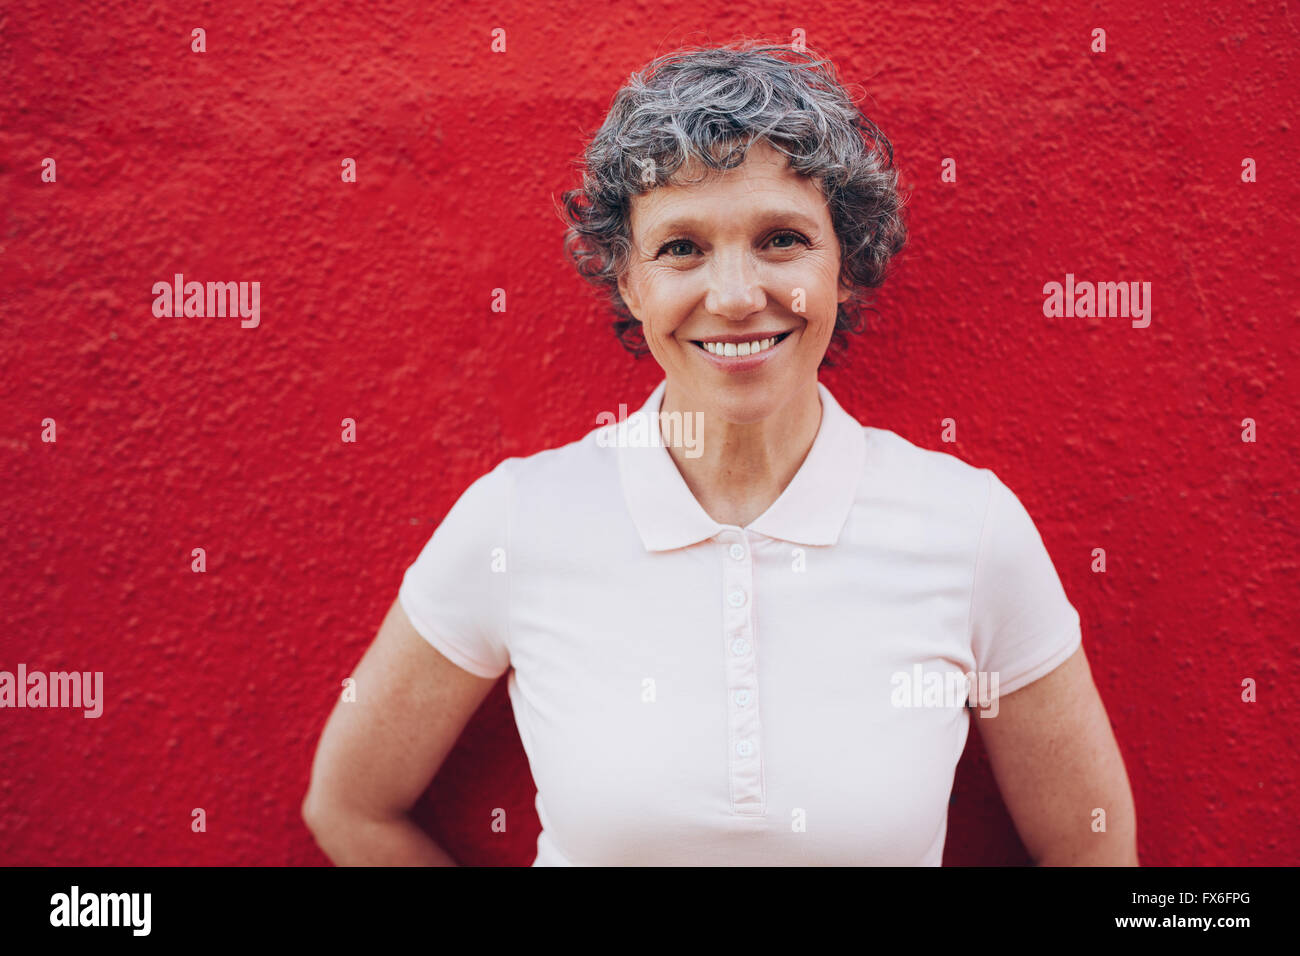 Portrait of senior woman standing contre fond rouge. Smiling female contre mur rouge. Photo Stock